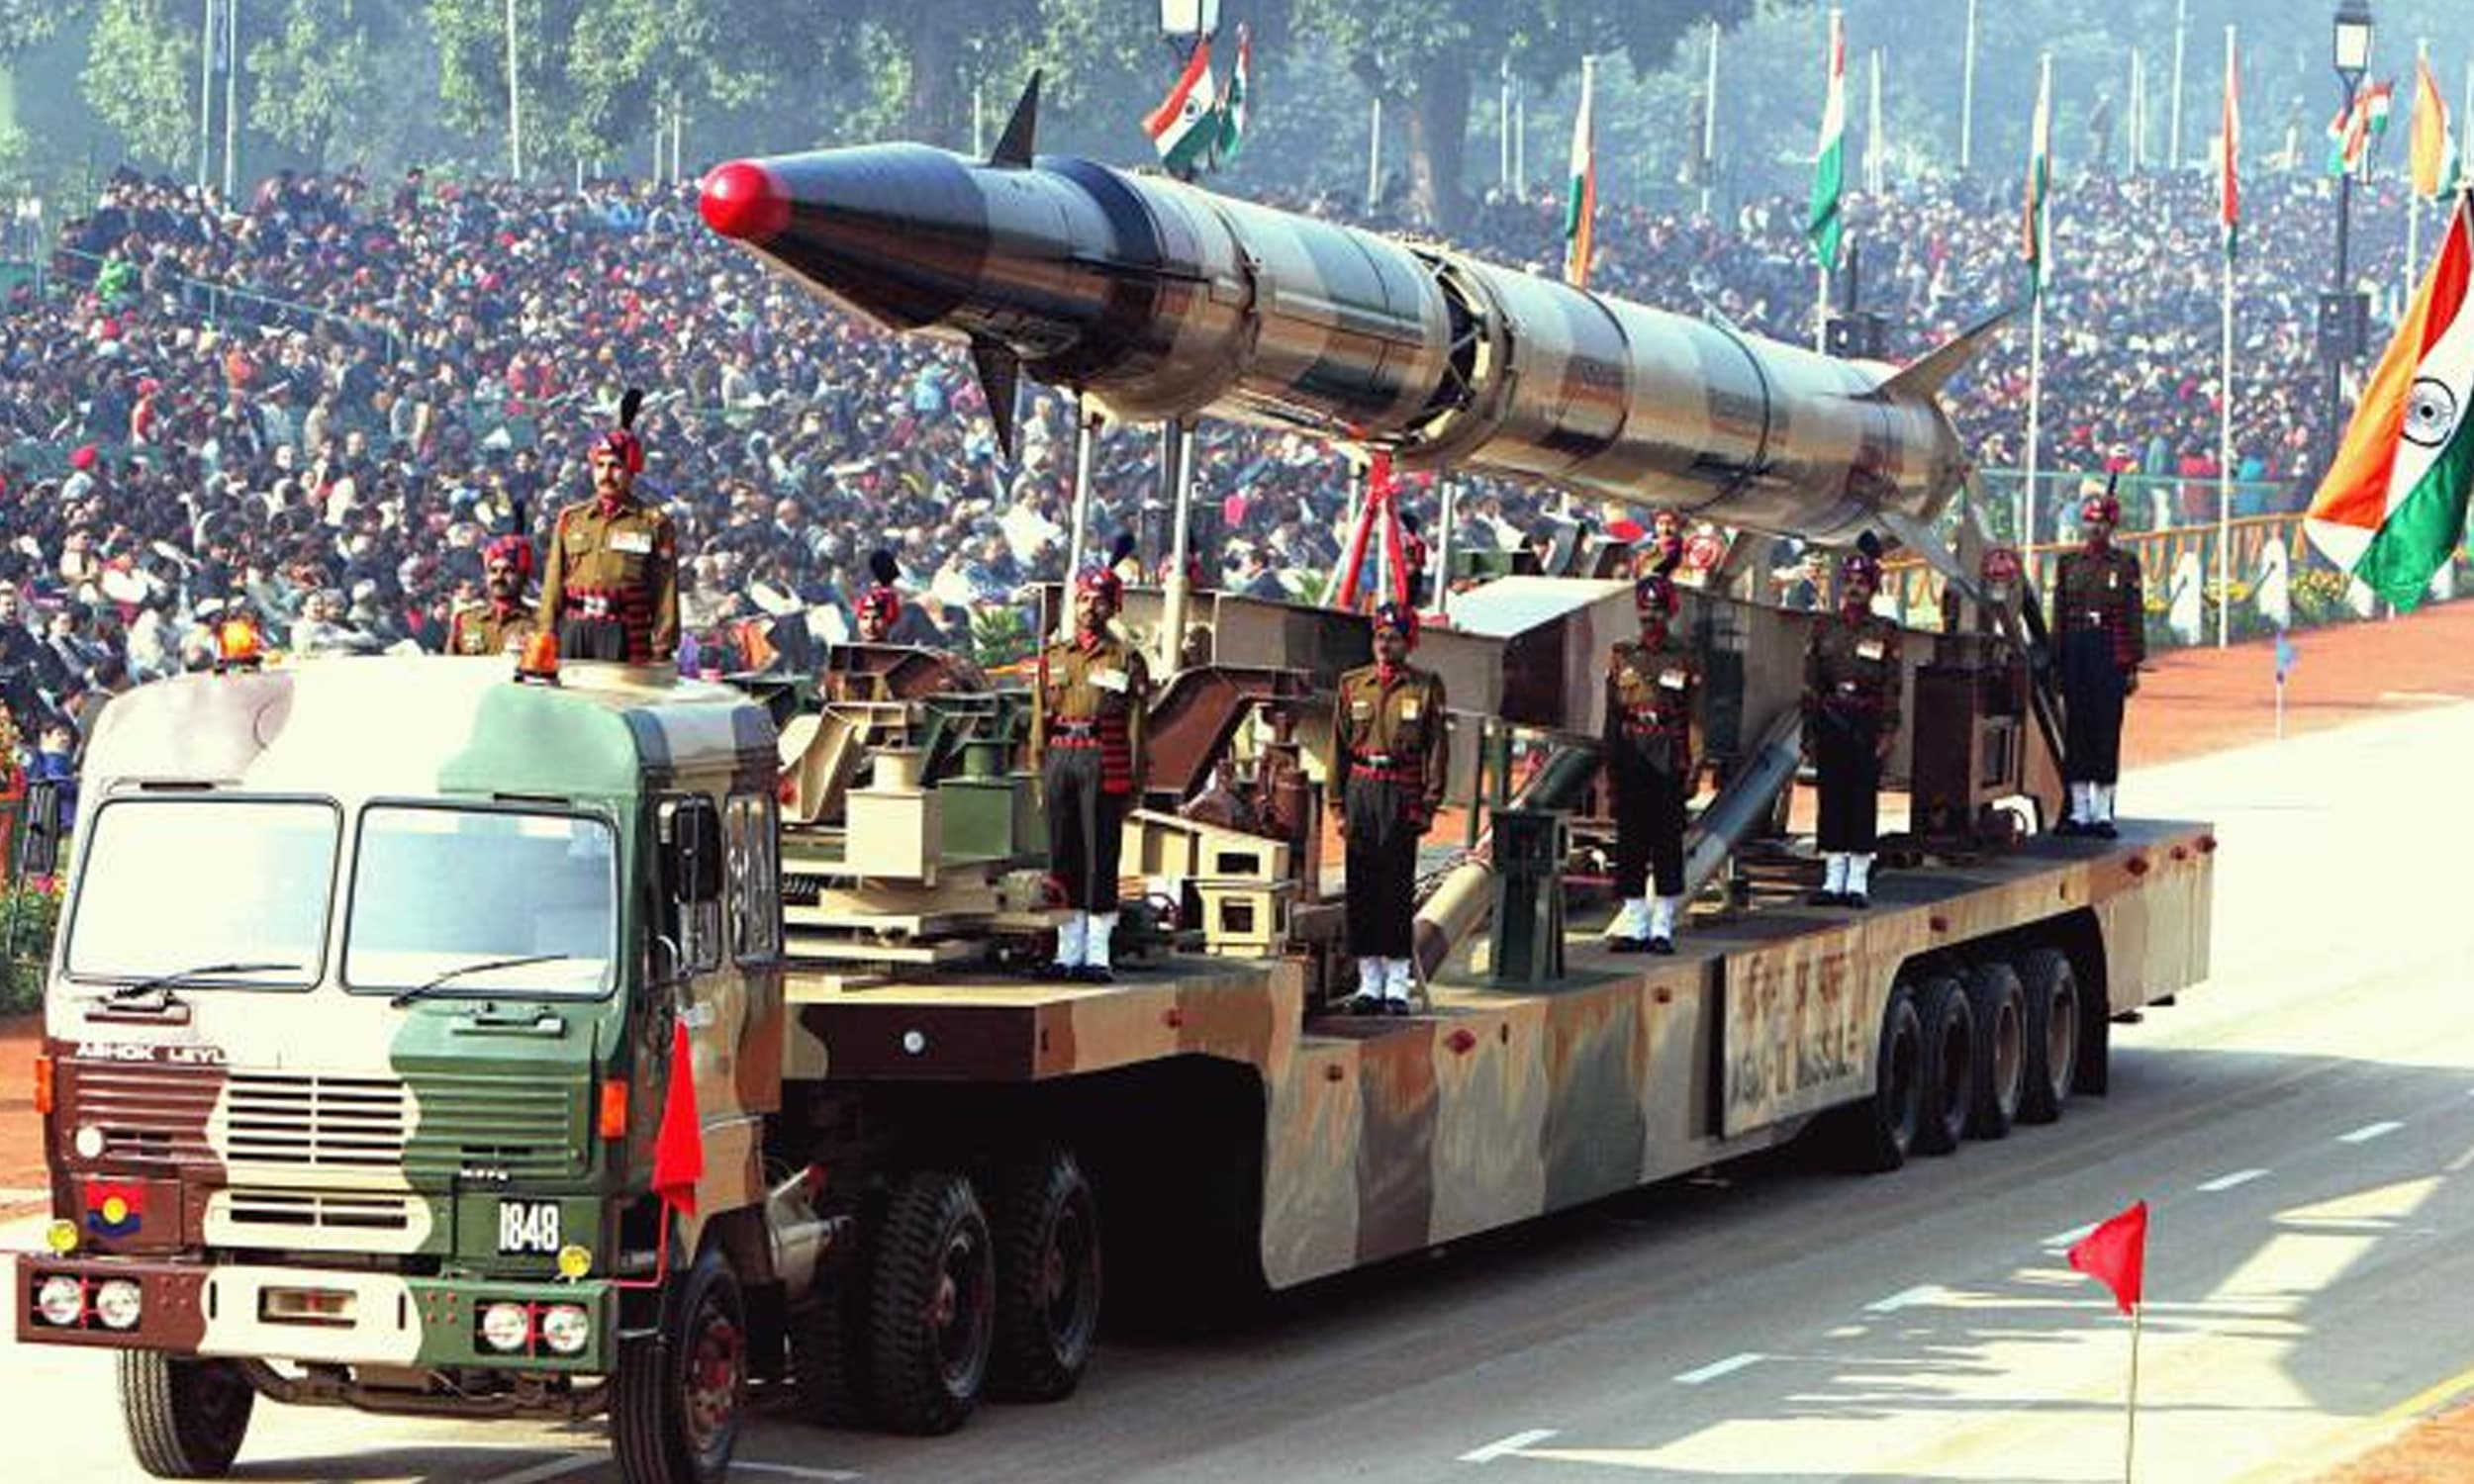 An Indian Agni-II intermediate range ballistic missile on a road-mobile launcher, displayed at the Republic Day Parade on New Delhi's Rajpath, January 26, 2004 | Via the Wire India